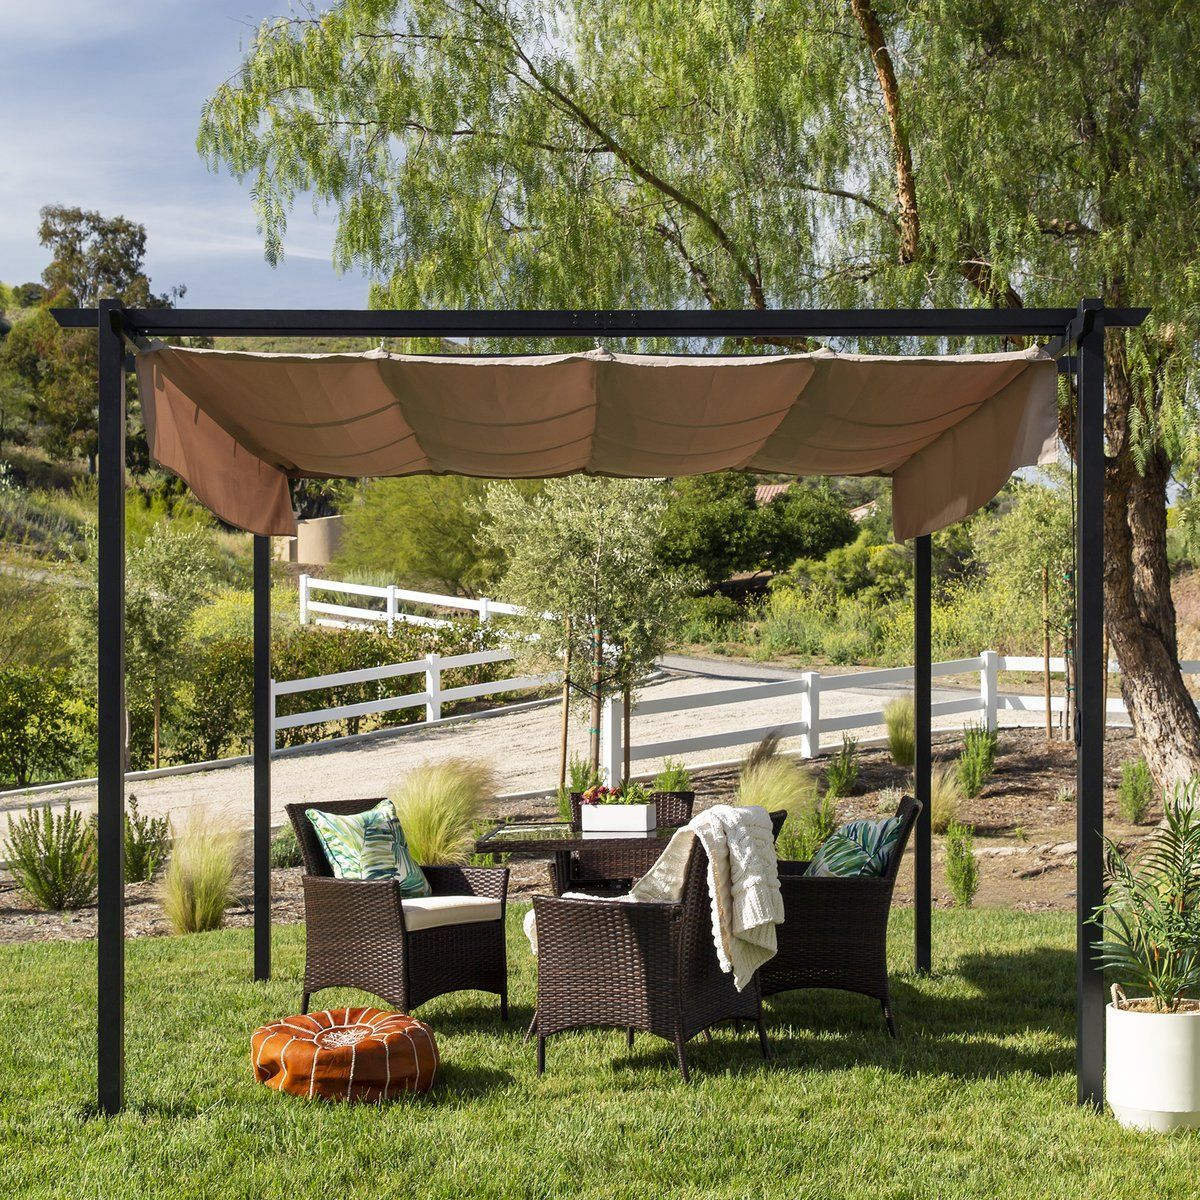 10x10 Ft Outdoor Pergola With Retractable Weatherproof Awning Steel Frame 10x10 Ft Outdoor In 2020 Backyard Shade Outdoor Pergola Backyard Pergola